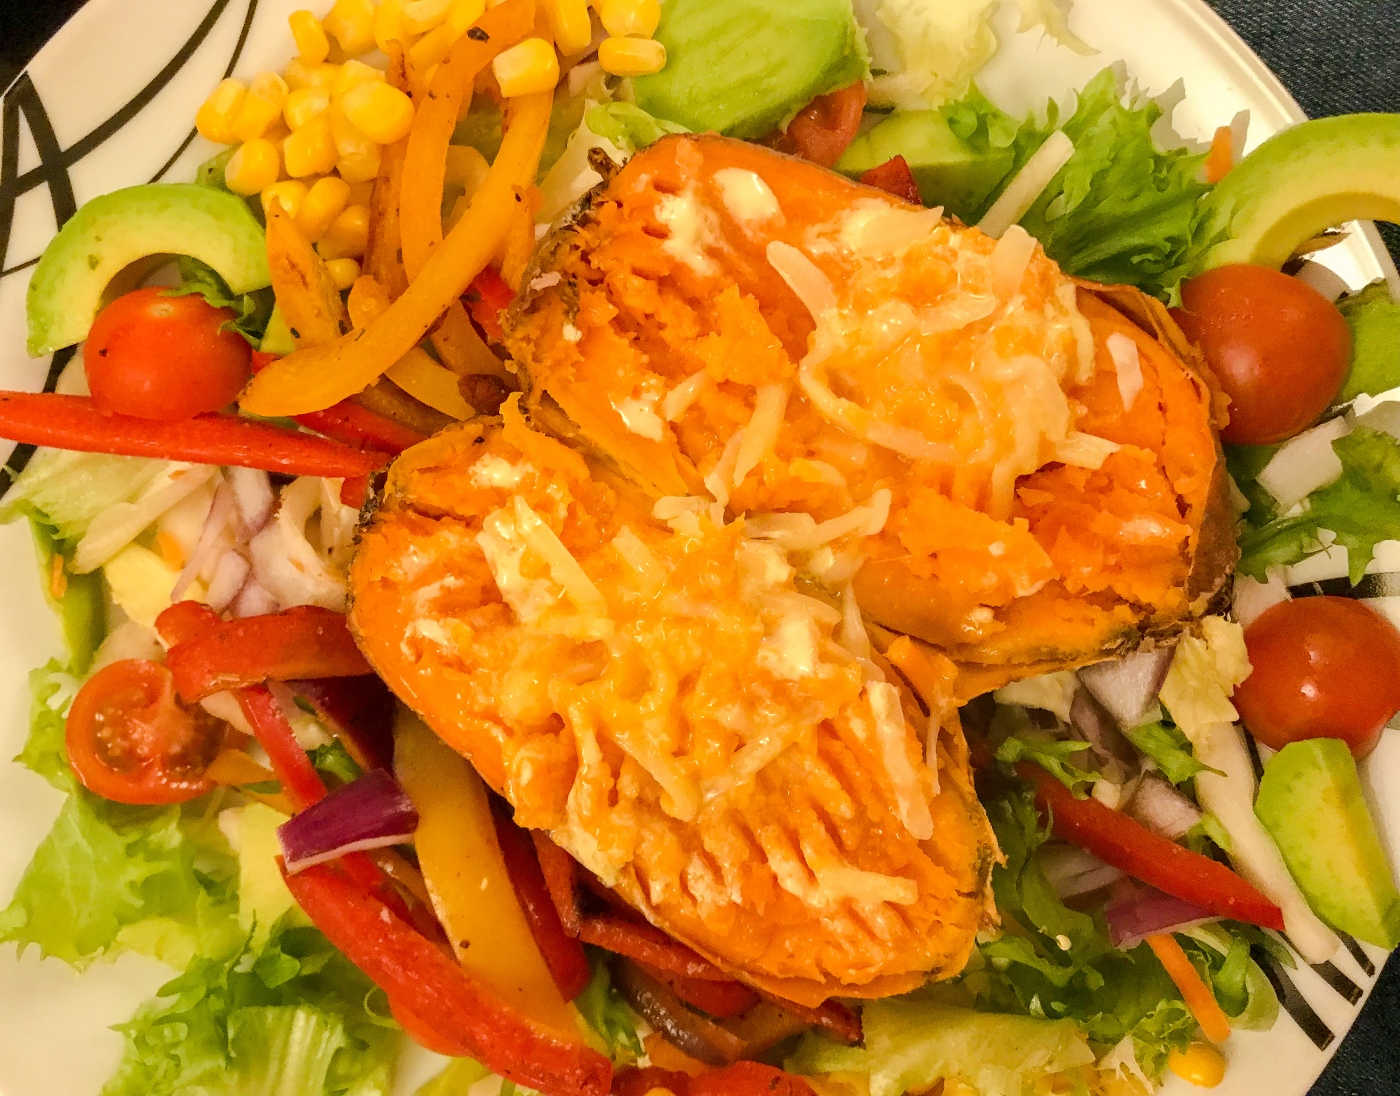 Rainbow salad with buttered sweet potato, salad leaves, tomatoes, avocado, sweetcorn, peppers and onion